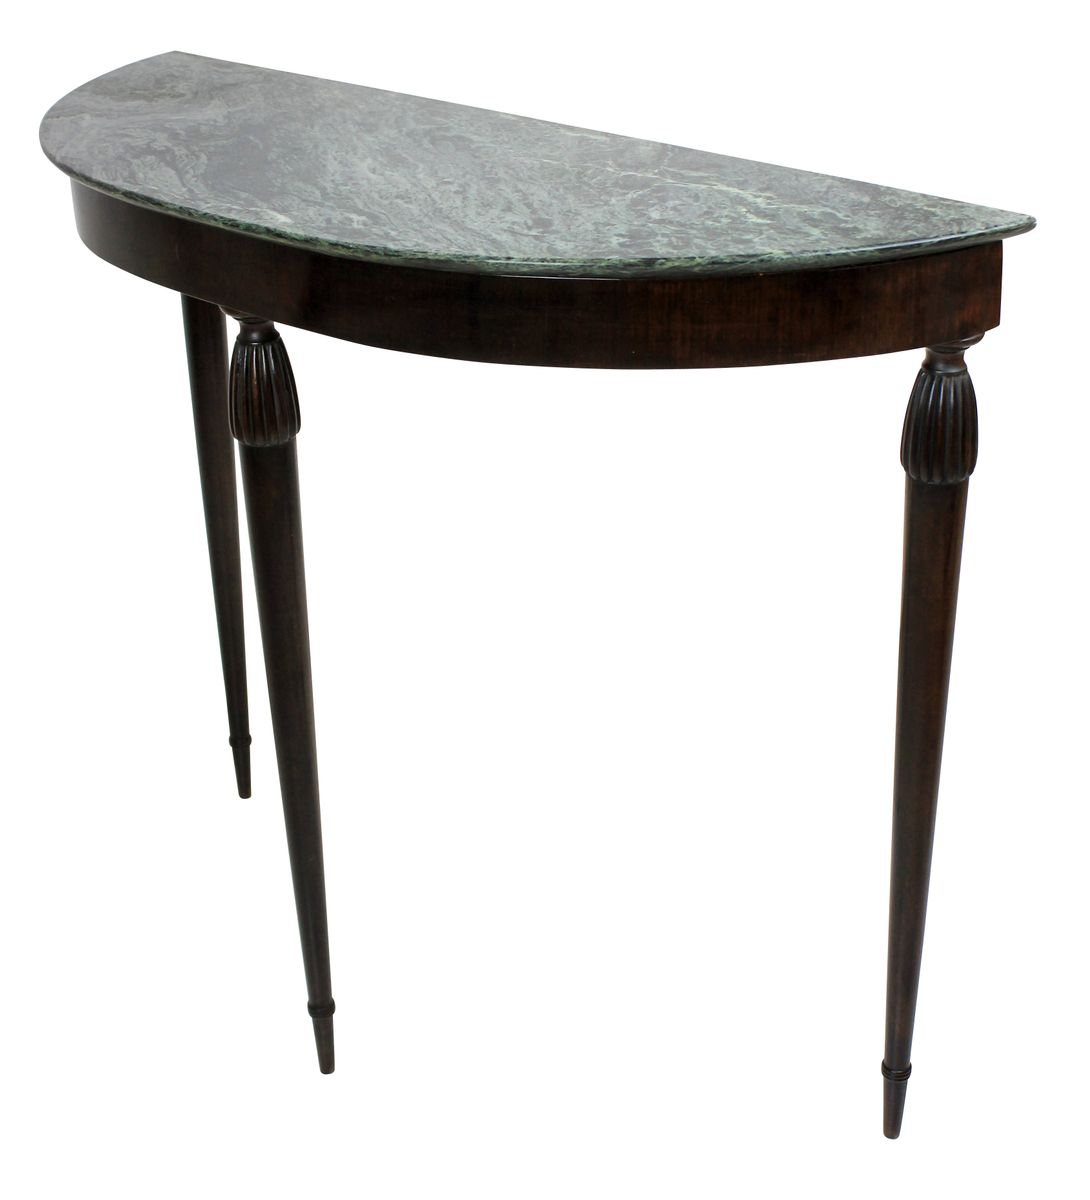 italian demi lune console table 1950s for sale at pamono. Black Bedroom Furniture Sets. Home Design Ideas